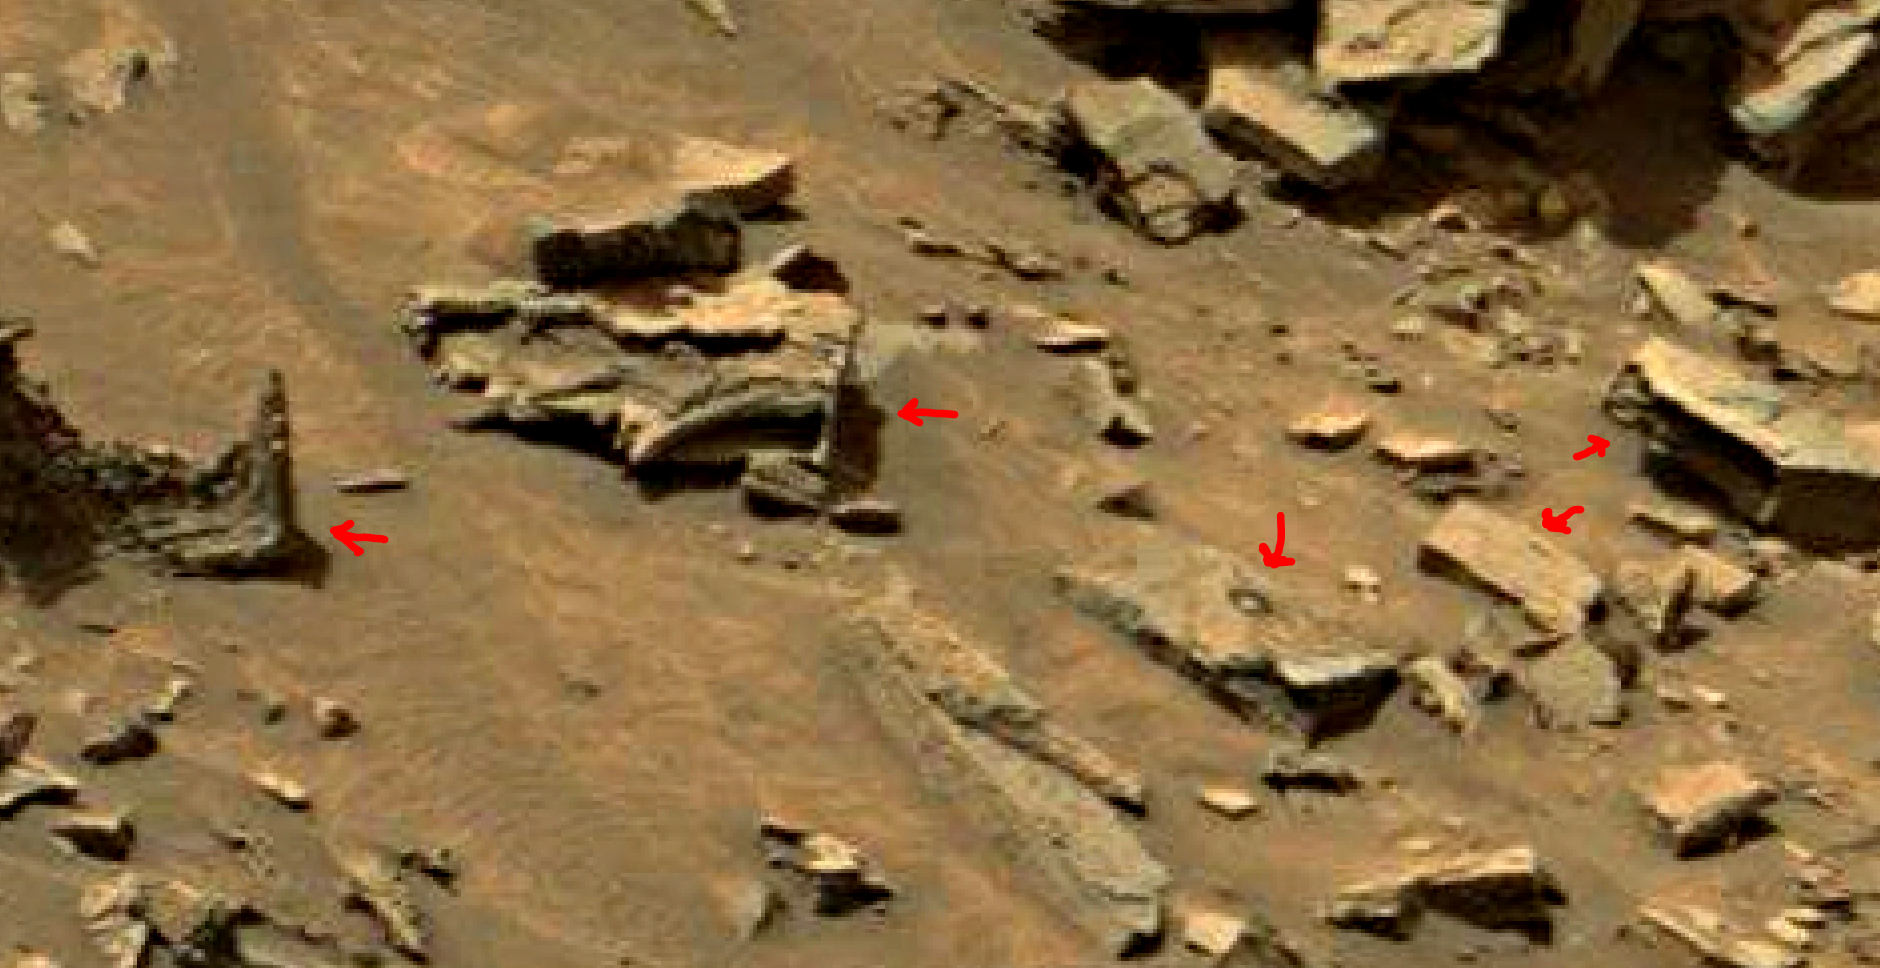 mars sol 1447 anomaly artifacts 3a - was life on mars